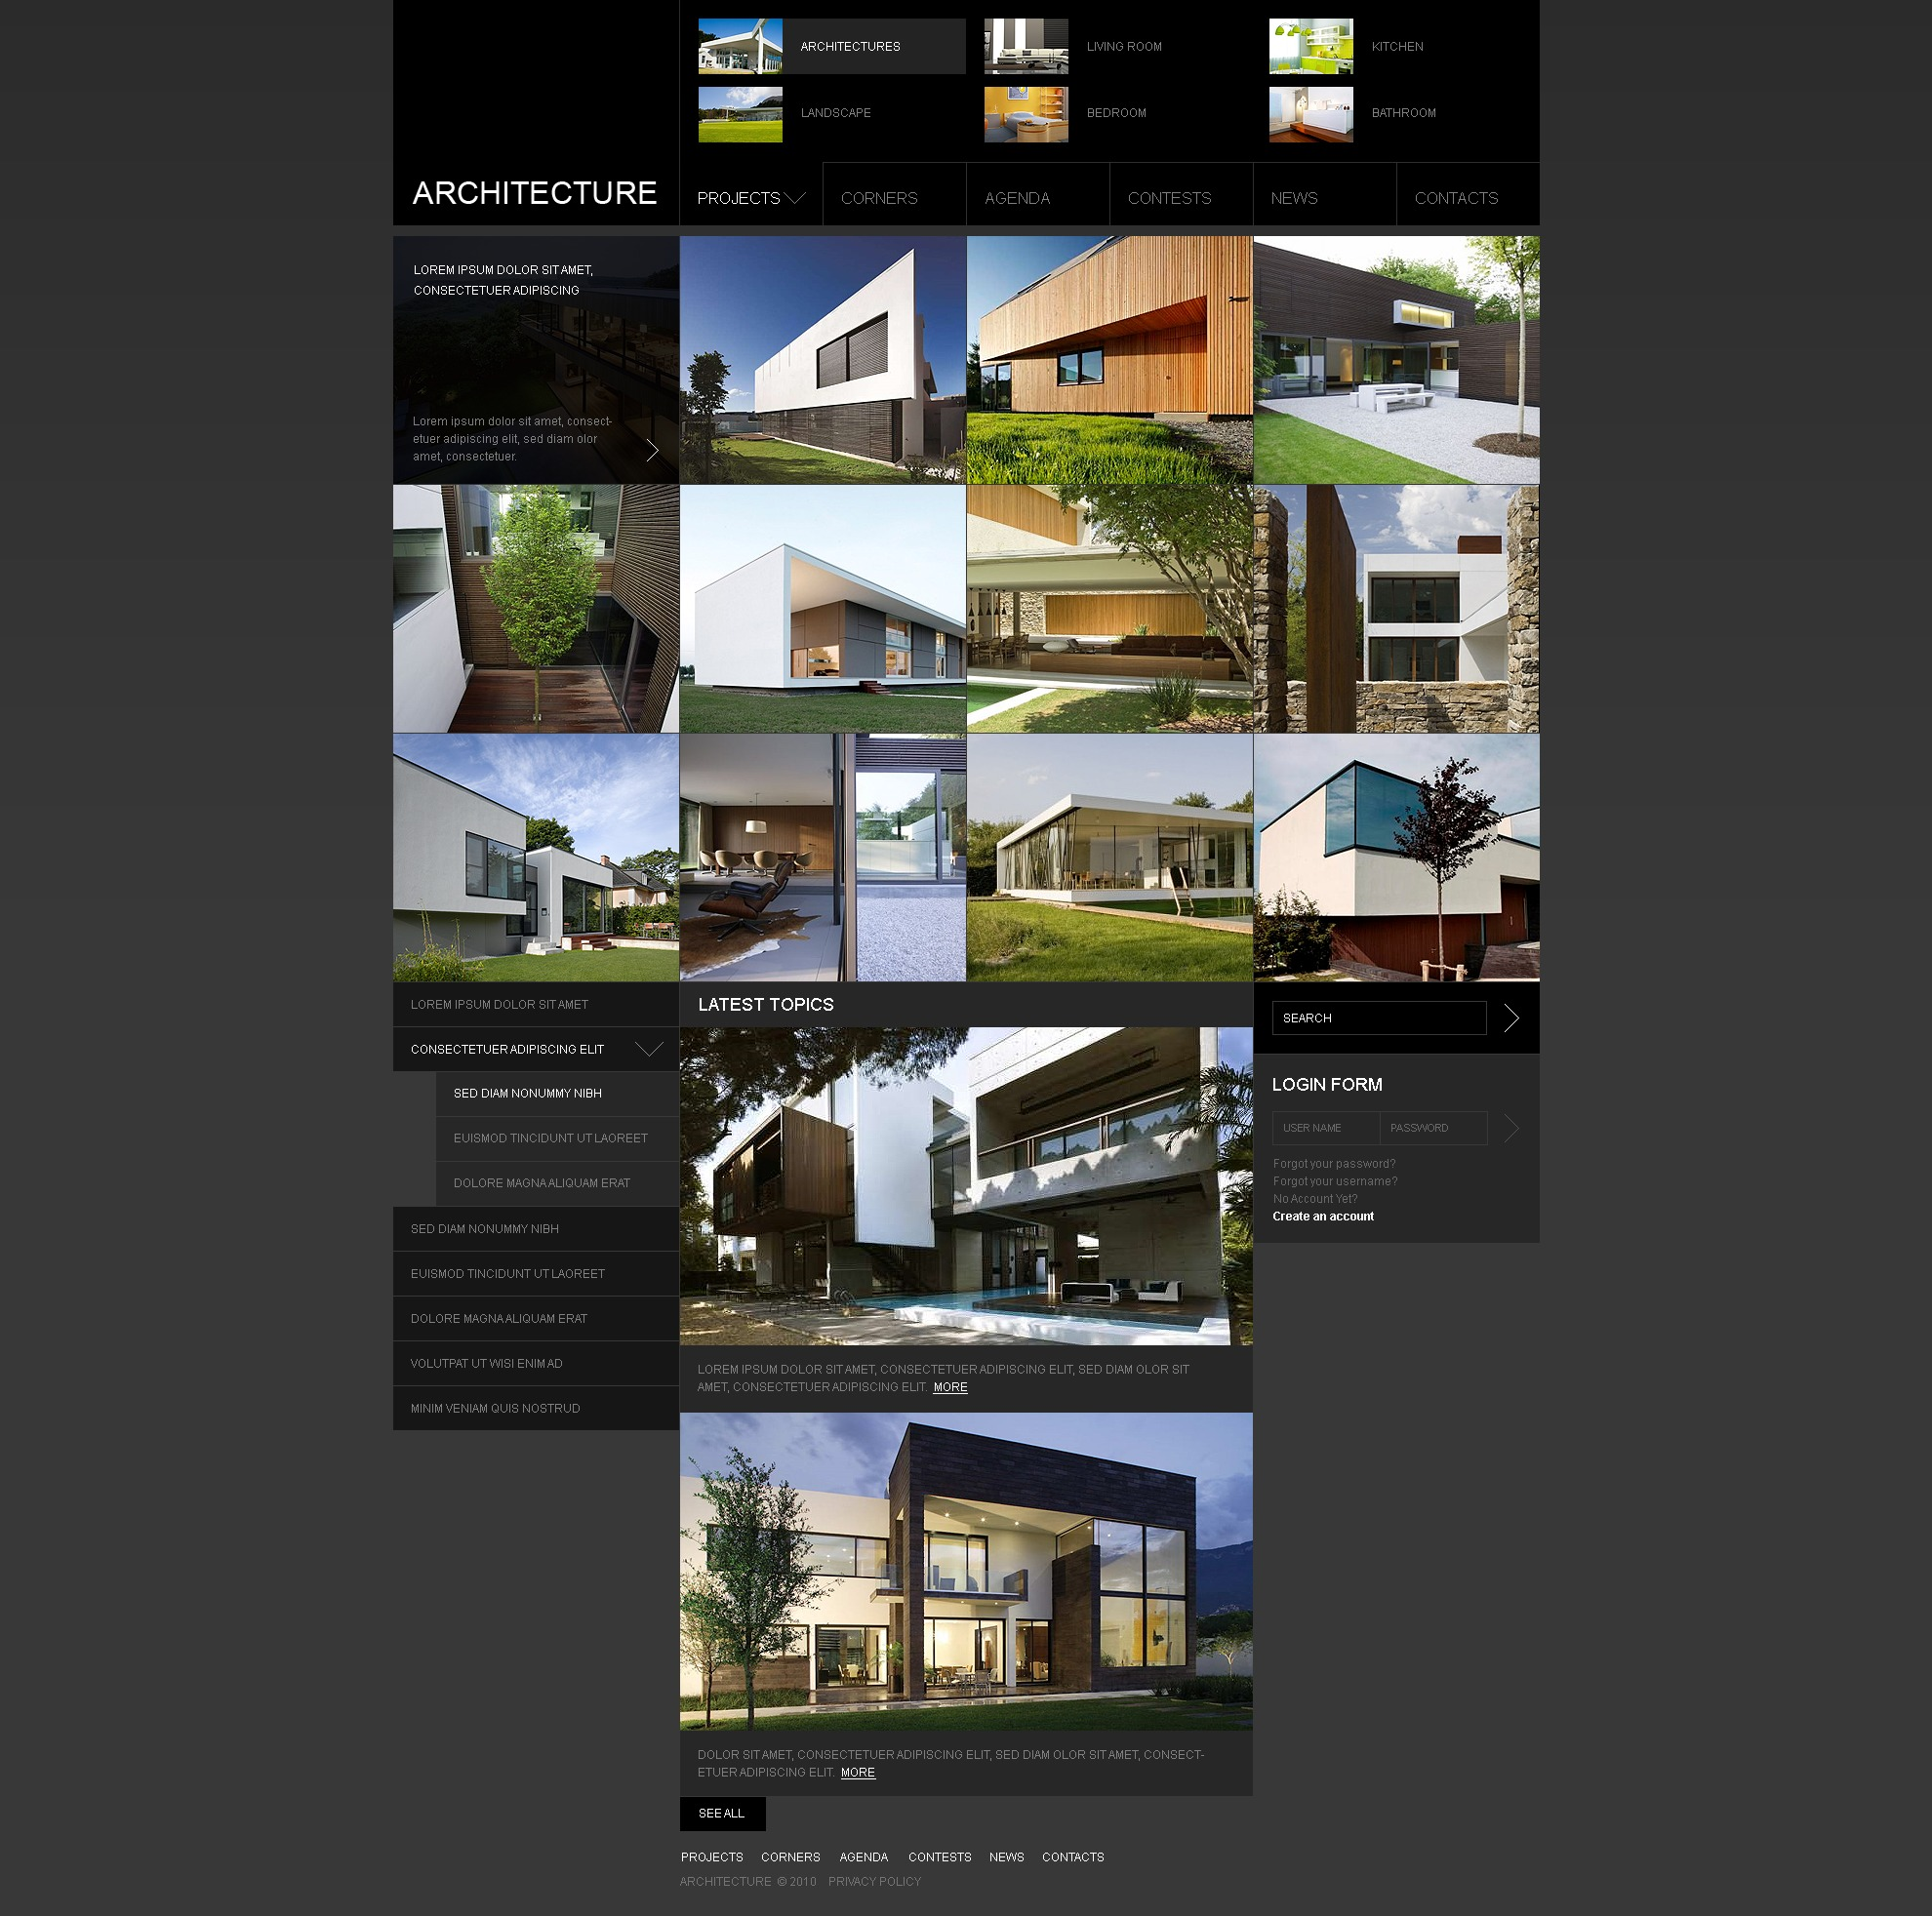 The Architecture Bureau Company PSD Design 54123, one of the best PSD templates of its kind (architecture, wide, jquery), also known as architecture bureau company PSD template, buildings PSD template, technology PSD template, innovation PSD template, skyscrapers PSD template, projects PSD template, constructions PSD template, houses PSD template, work PSD template, team PSD template, strategy PSD template, services PSD template, support PSD template, planning PSD template, custom design PSD template, enterprise PSD template, clients PSD template, partners PSD template, esteem and related with architecture bureau company, buildings, technology, innovation, skyscrapers, projects, constructions, houses, work, team, strategy, services, support, planning, custom design, enterprise, clients, partners, esteem, etc.